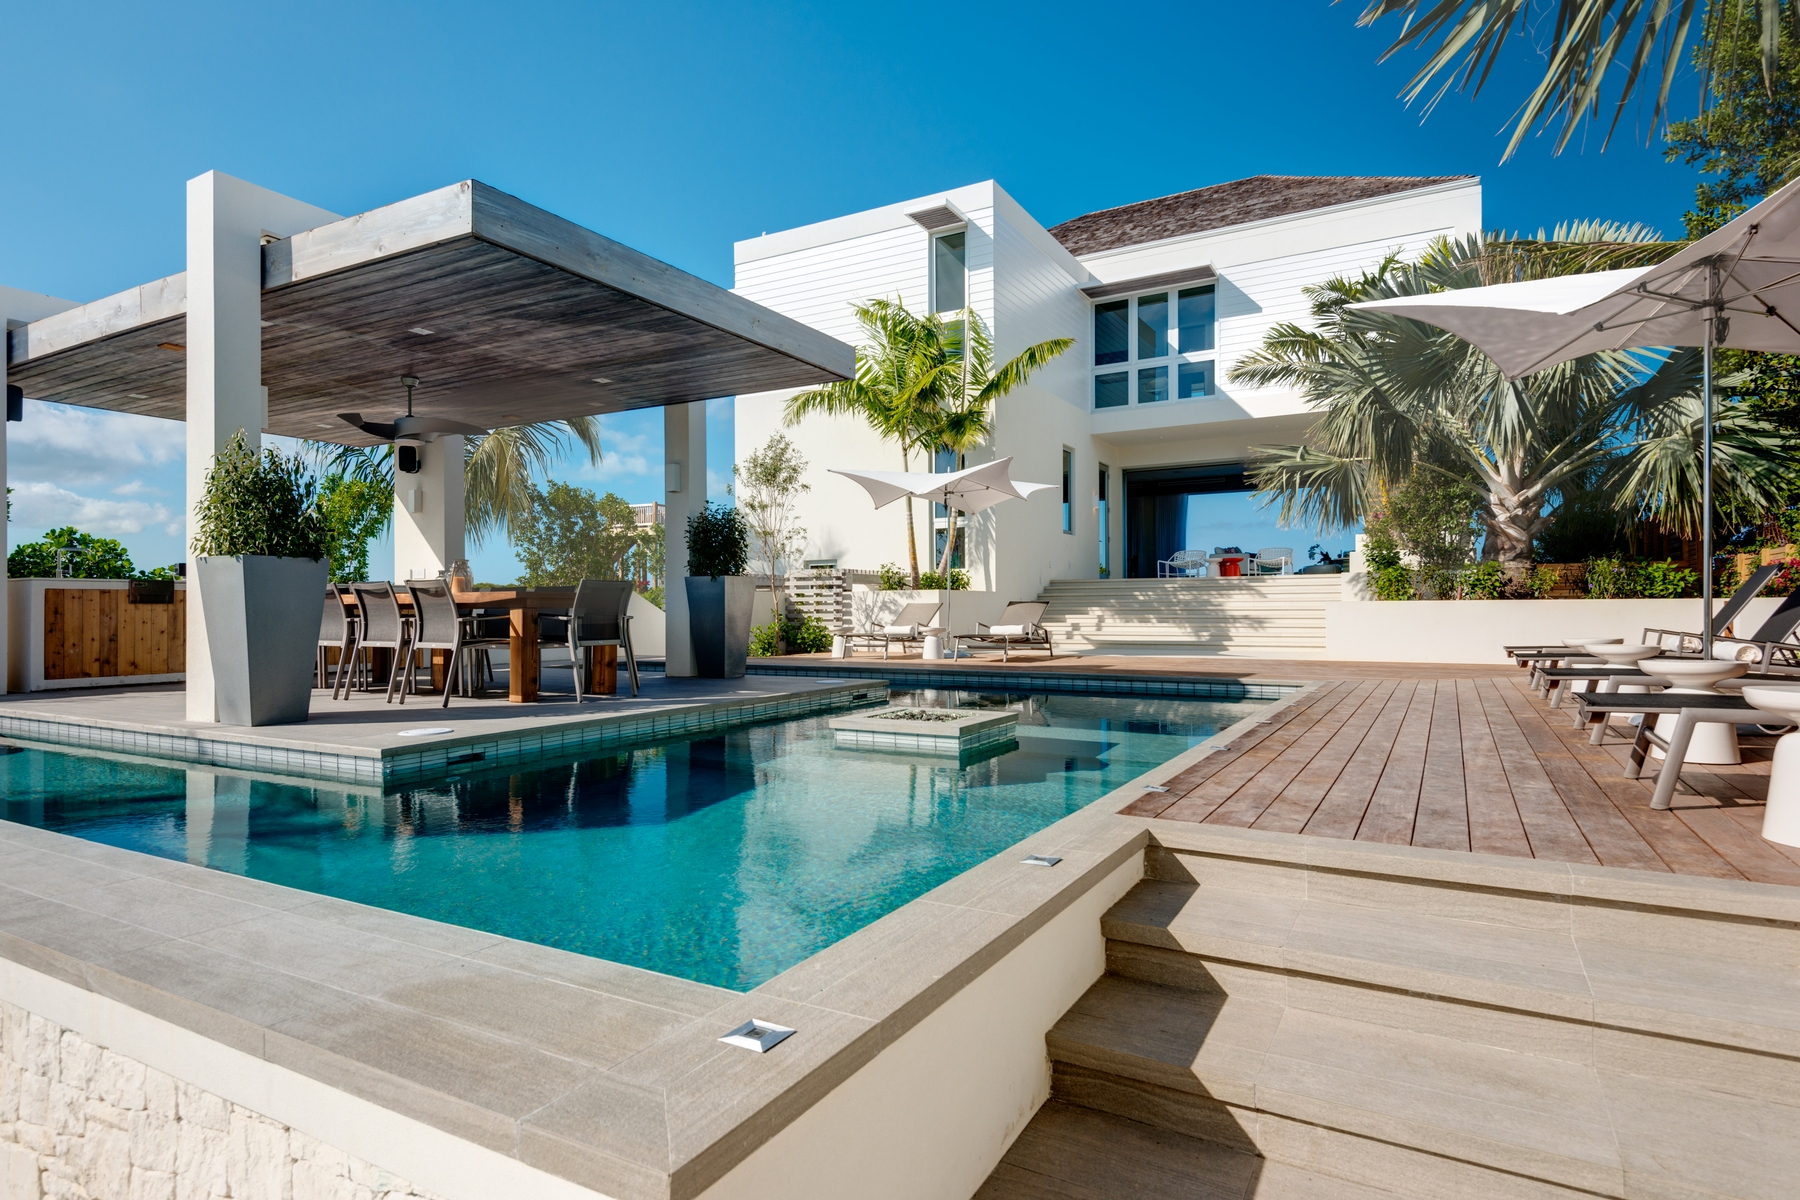 Single Family Home for Sale at The Dunes Villa 1 ~ Managed by Grace Bay Resorts North Shore Beachfront Turtle Cove, Providenciales, TC Turks And Caicos Islands